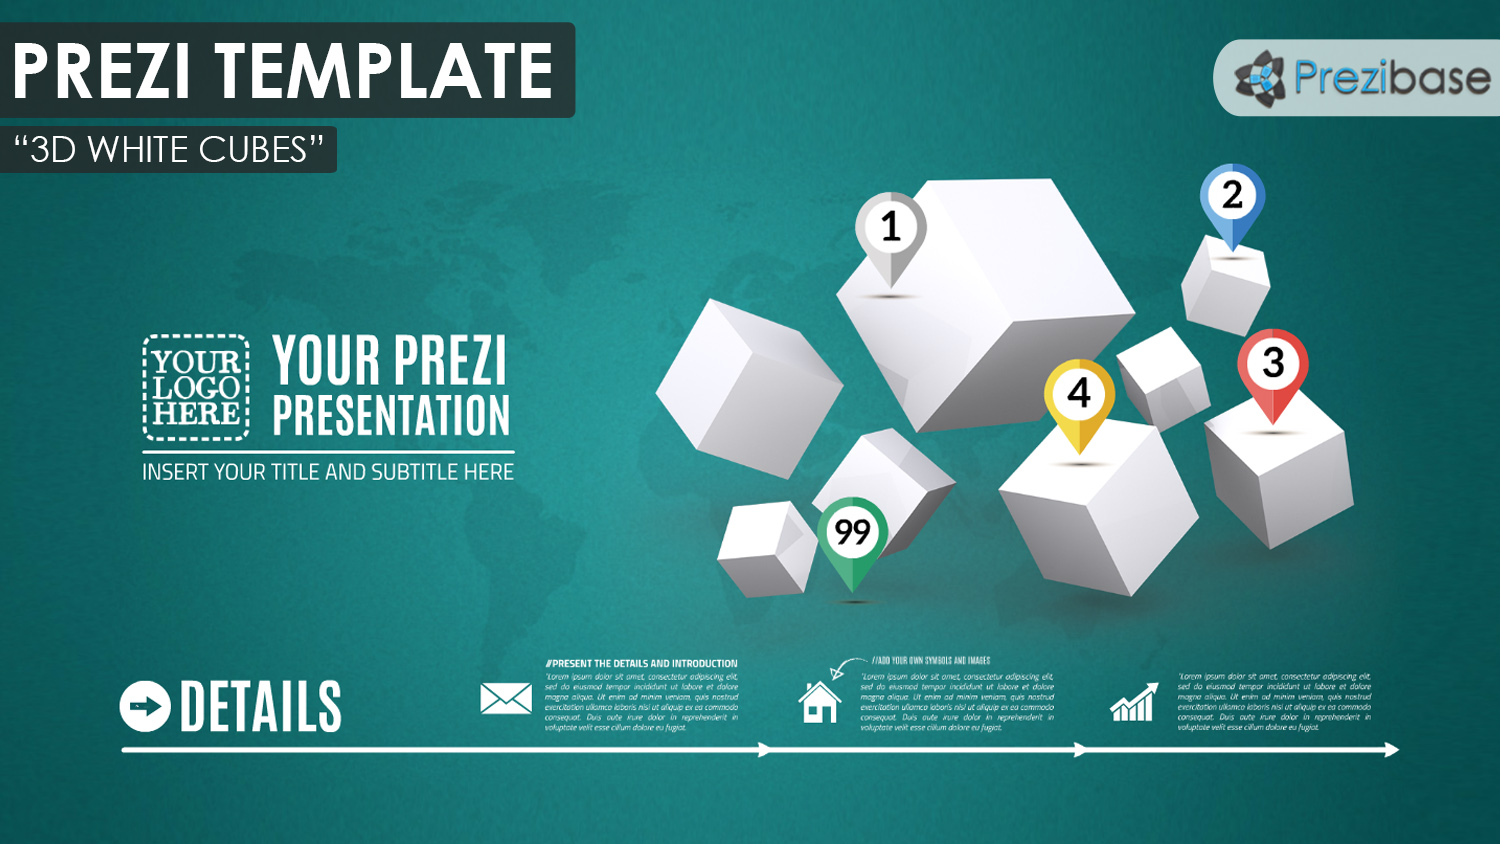 3D white cubes squares infographic business prezi template